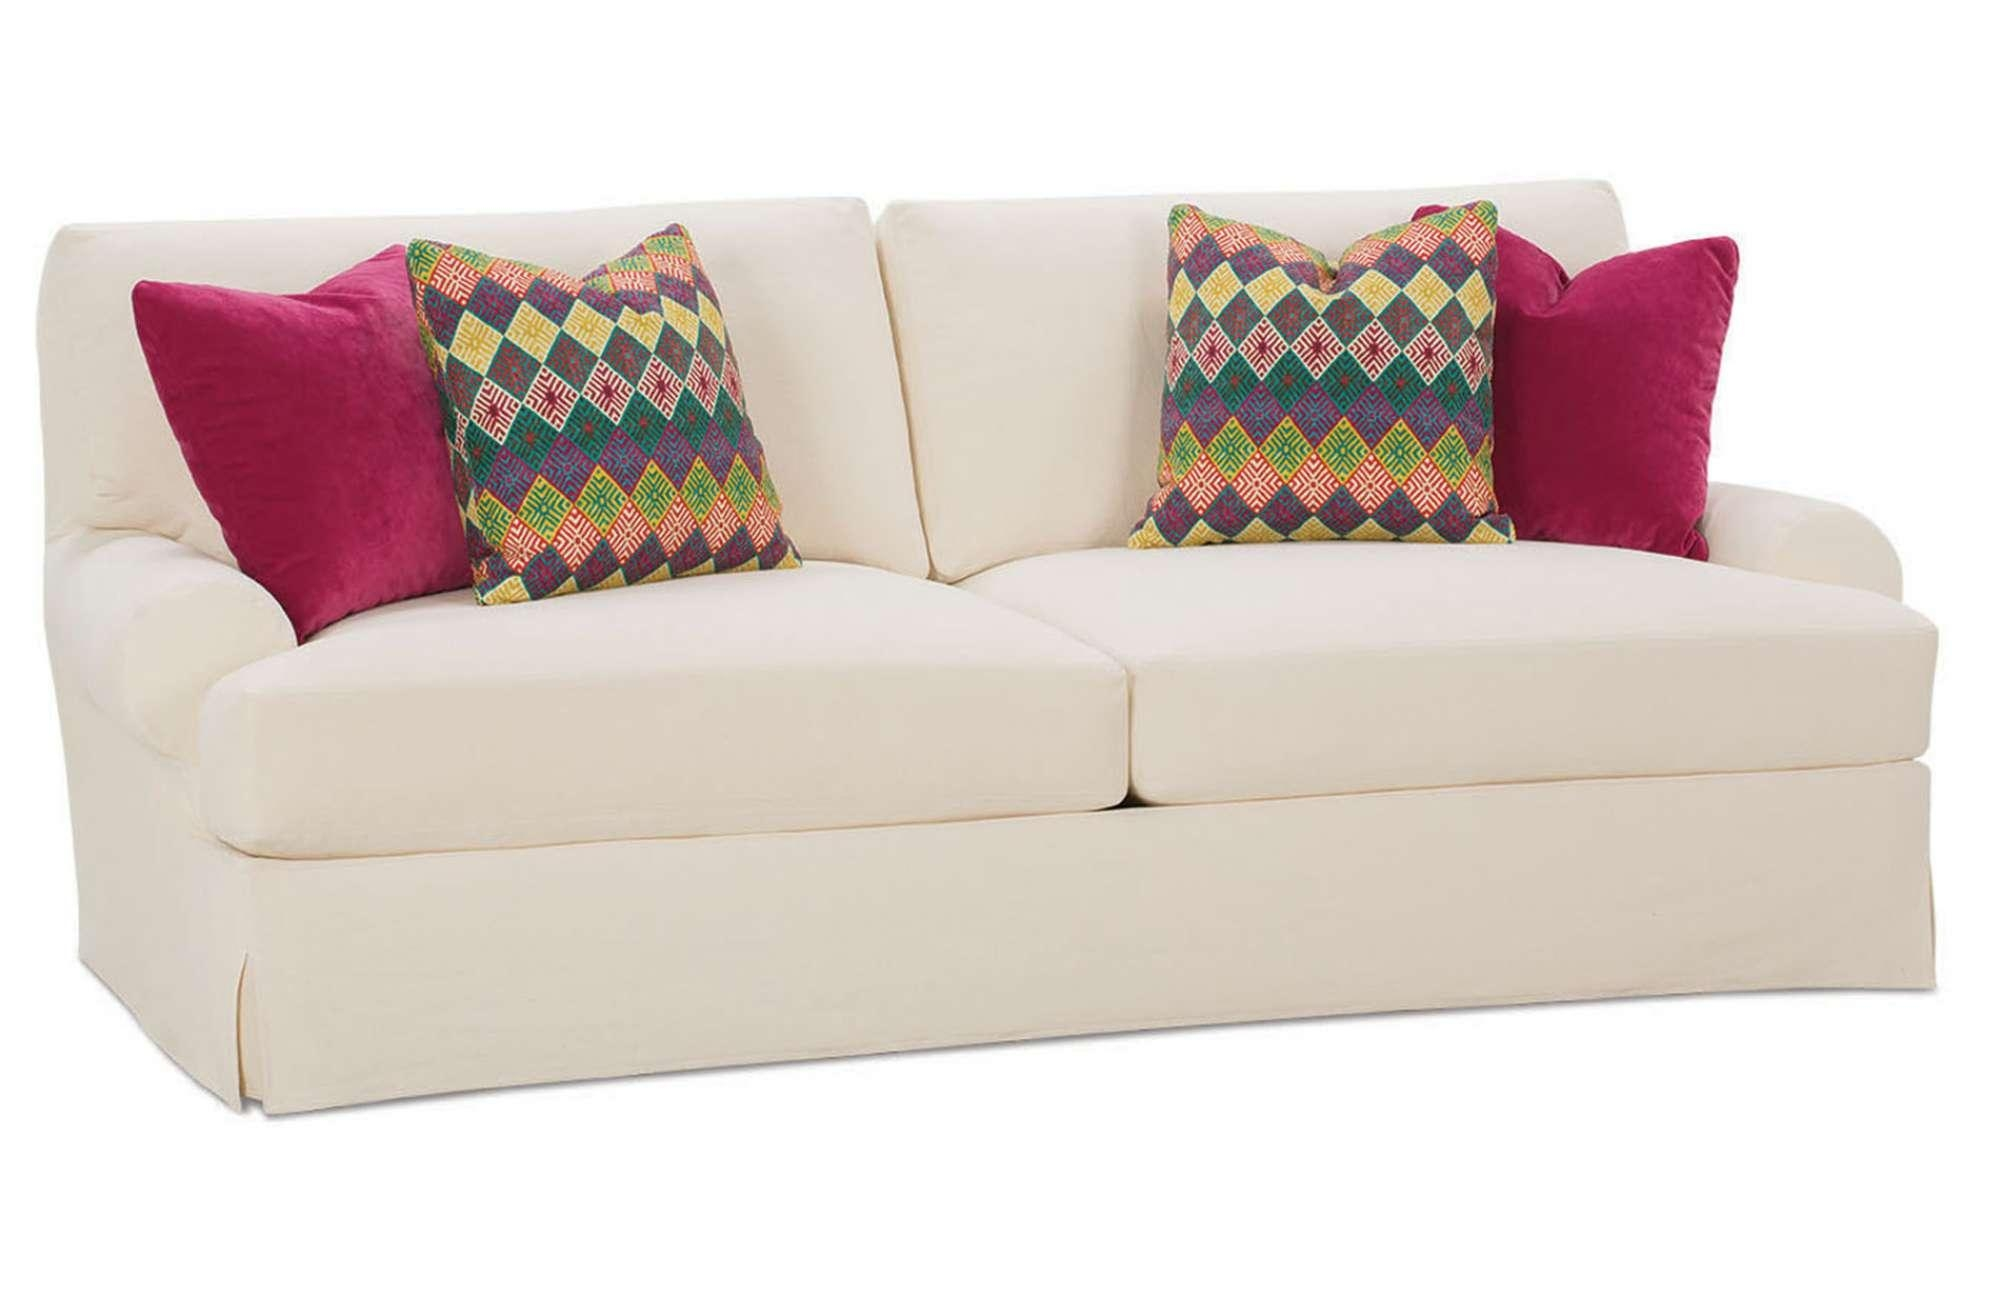 Sofas : Magnificent Extra Long Sofa Slipcover Large Couch For Large Sofa Slipcovers (View 17 of 23)